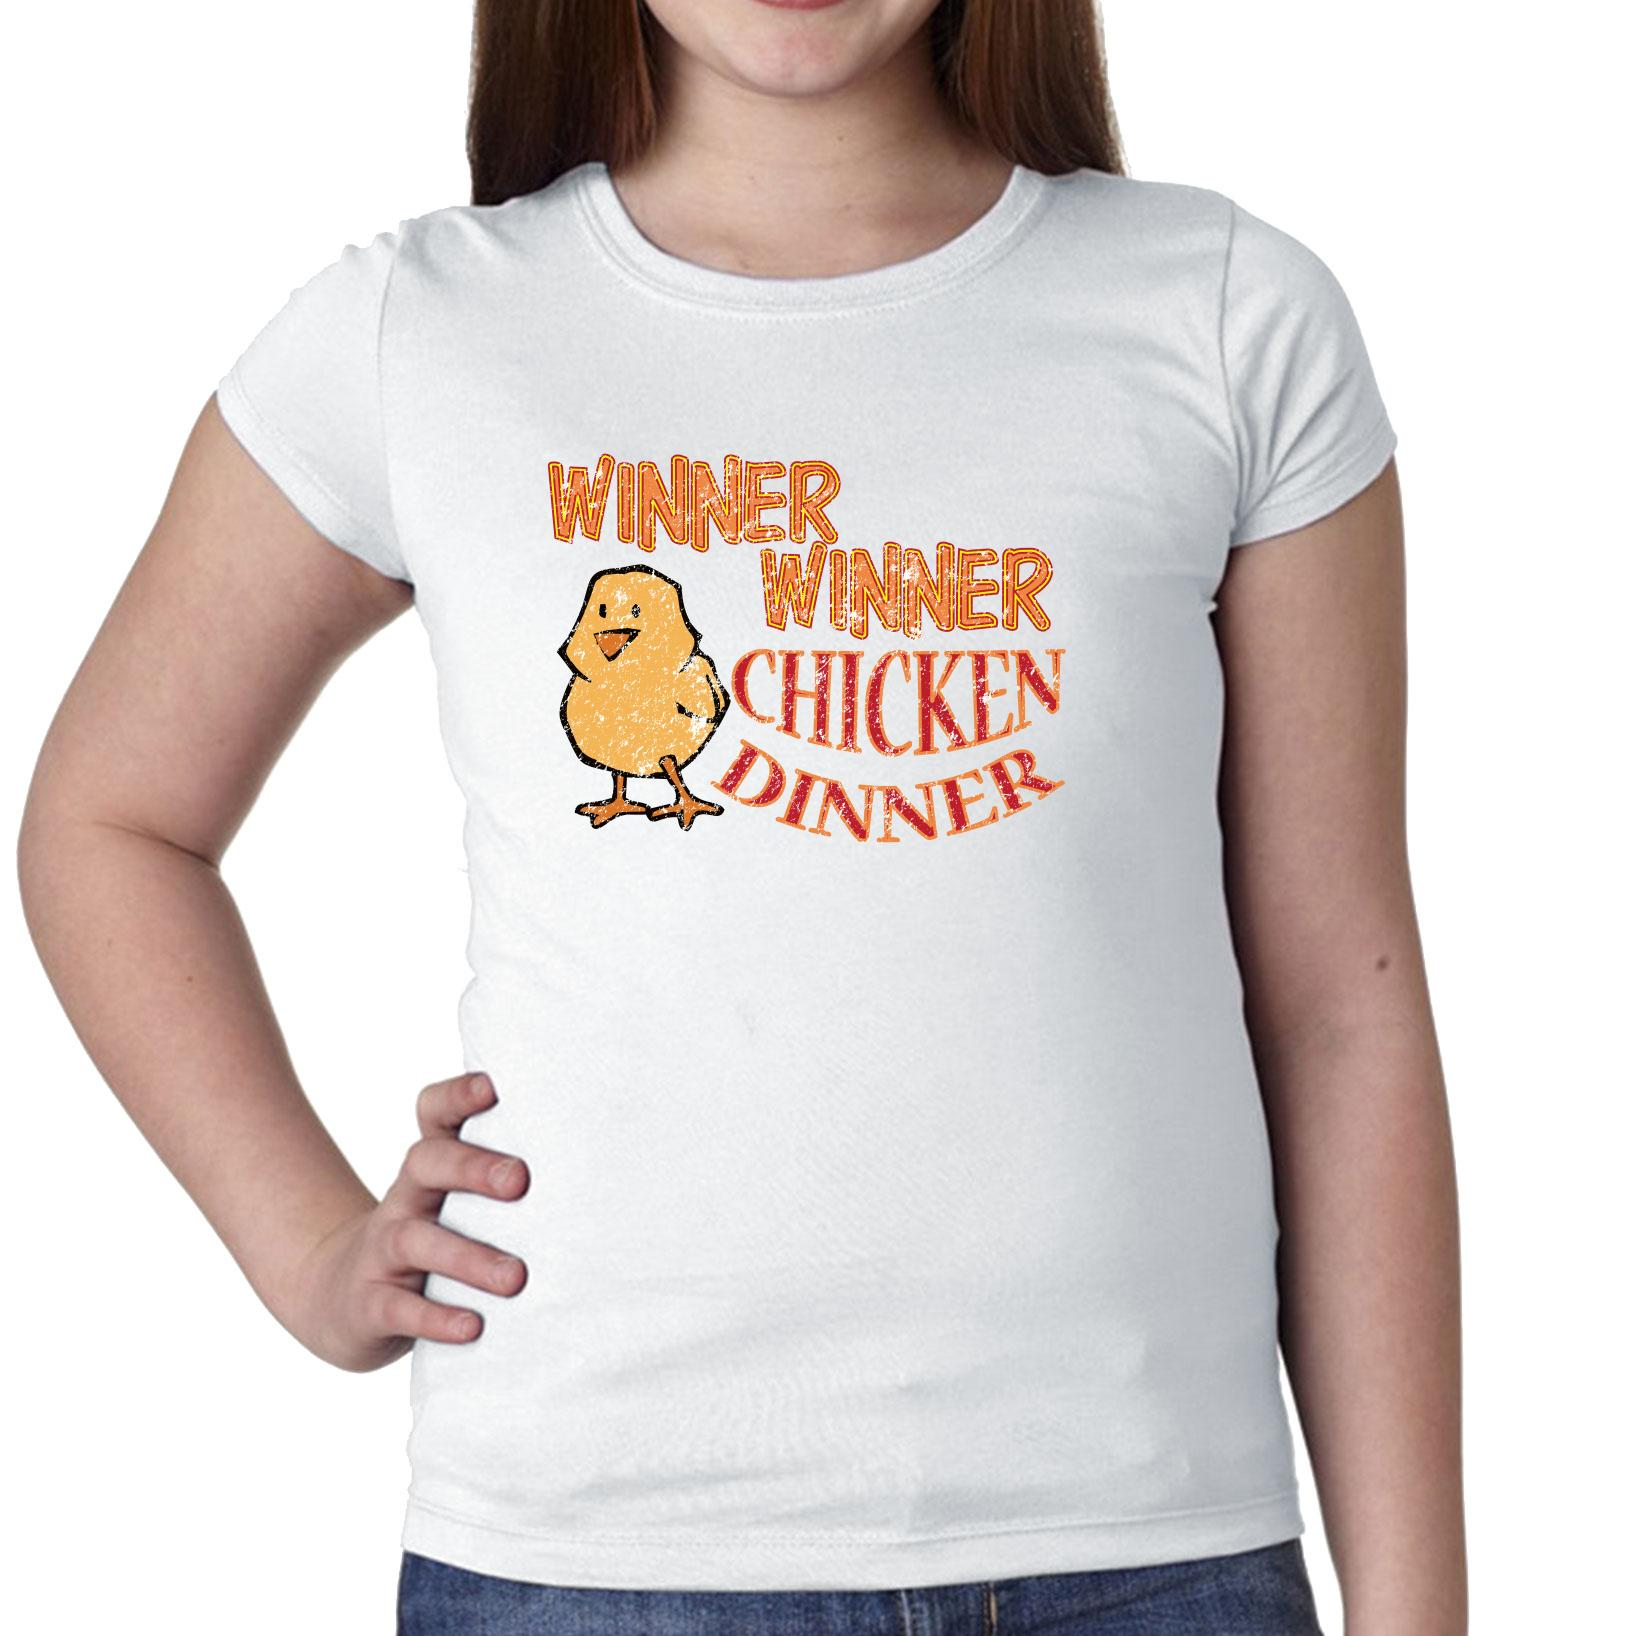 Winner Winner Chicken Dinner - Cool Graphic Girl's Cotton...